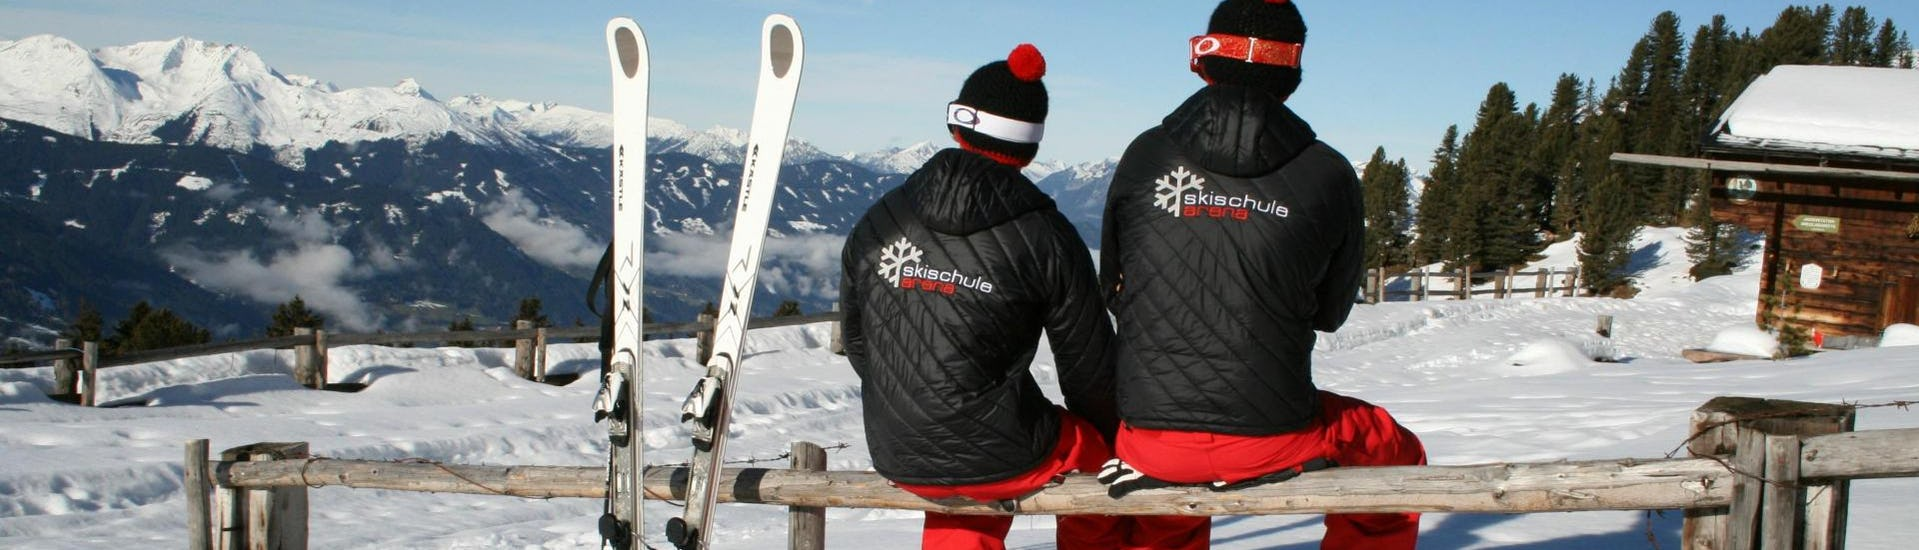 As the Ski Lessons for Adults - Beginners are over, two ski instructors from Skischule Arena in Zell am Ziller are taking a break and enjoy the magnificent views of the mountains covered in snow.